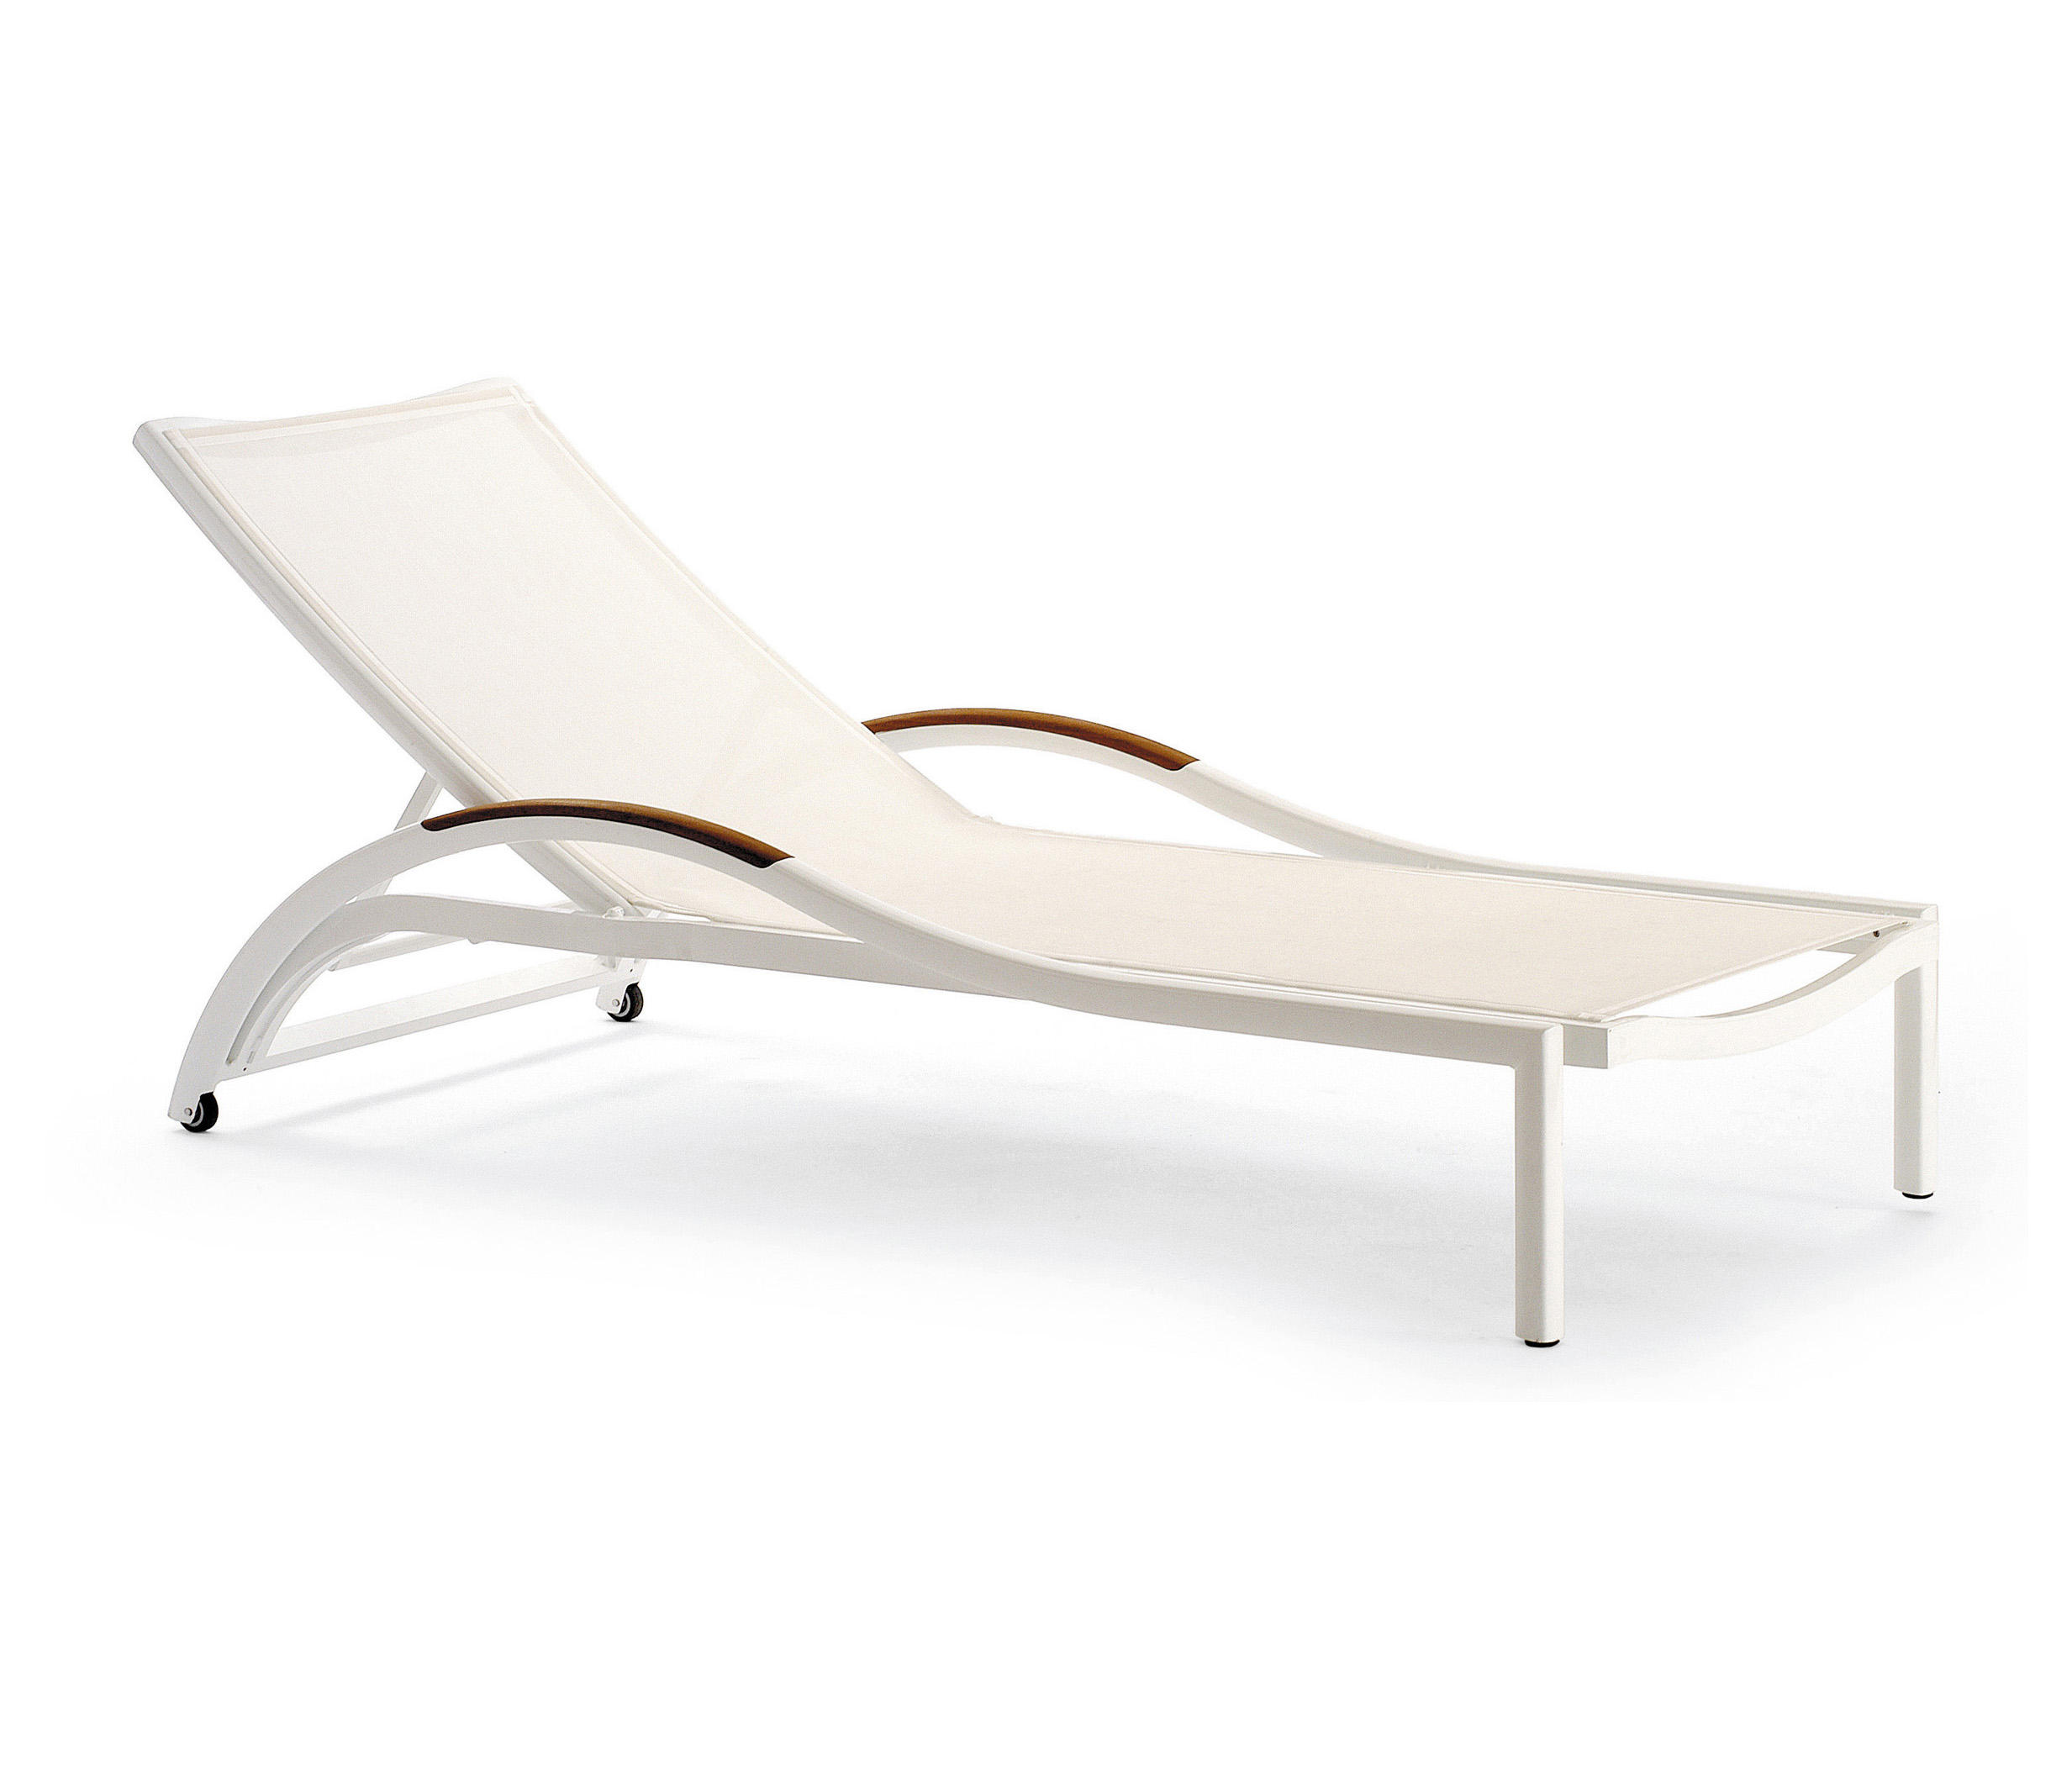 Sunbathing Chairs PremiÈre Sunbathing Chair Sun Loungers From Ego Paris